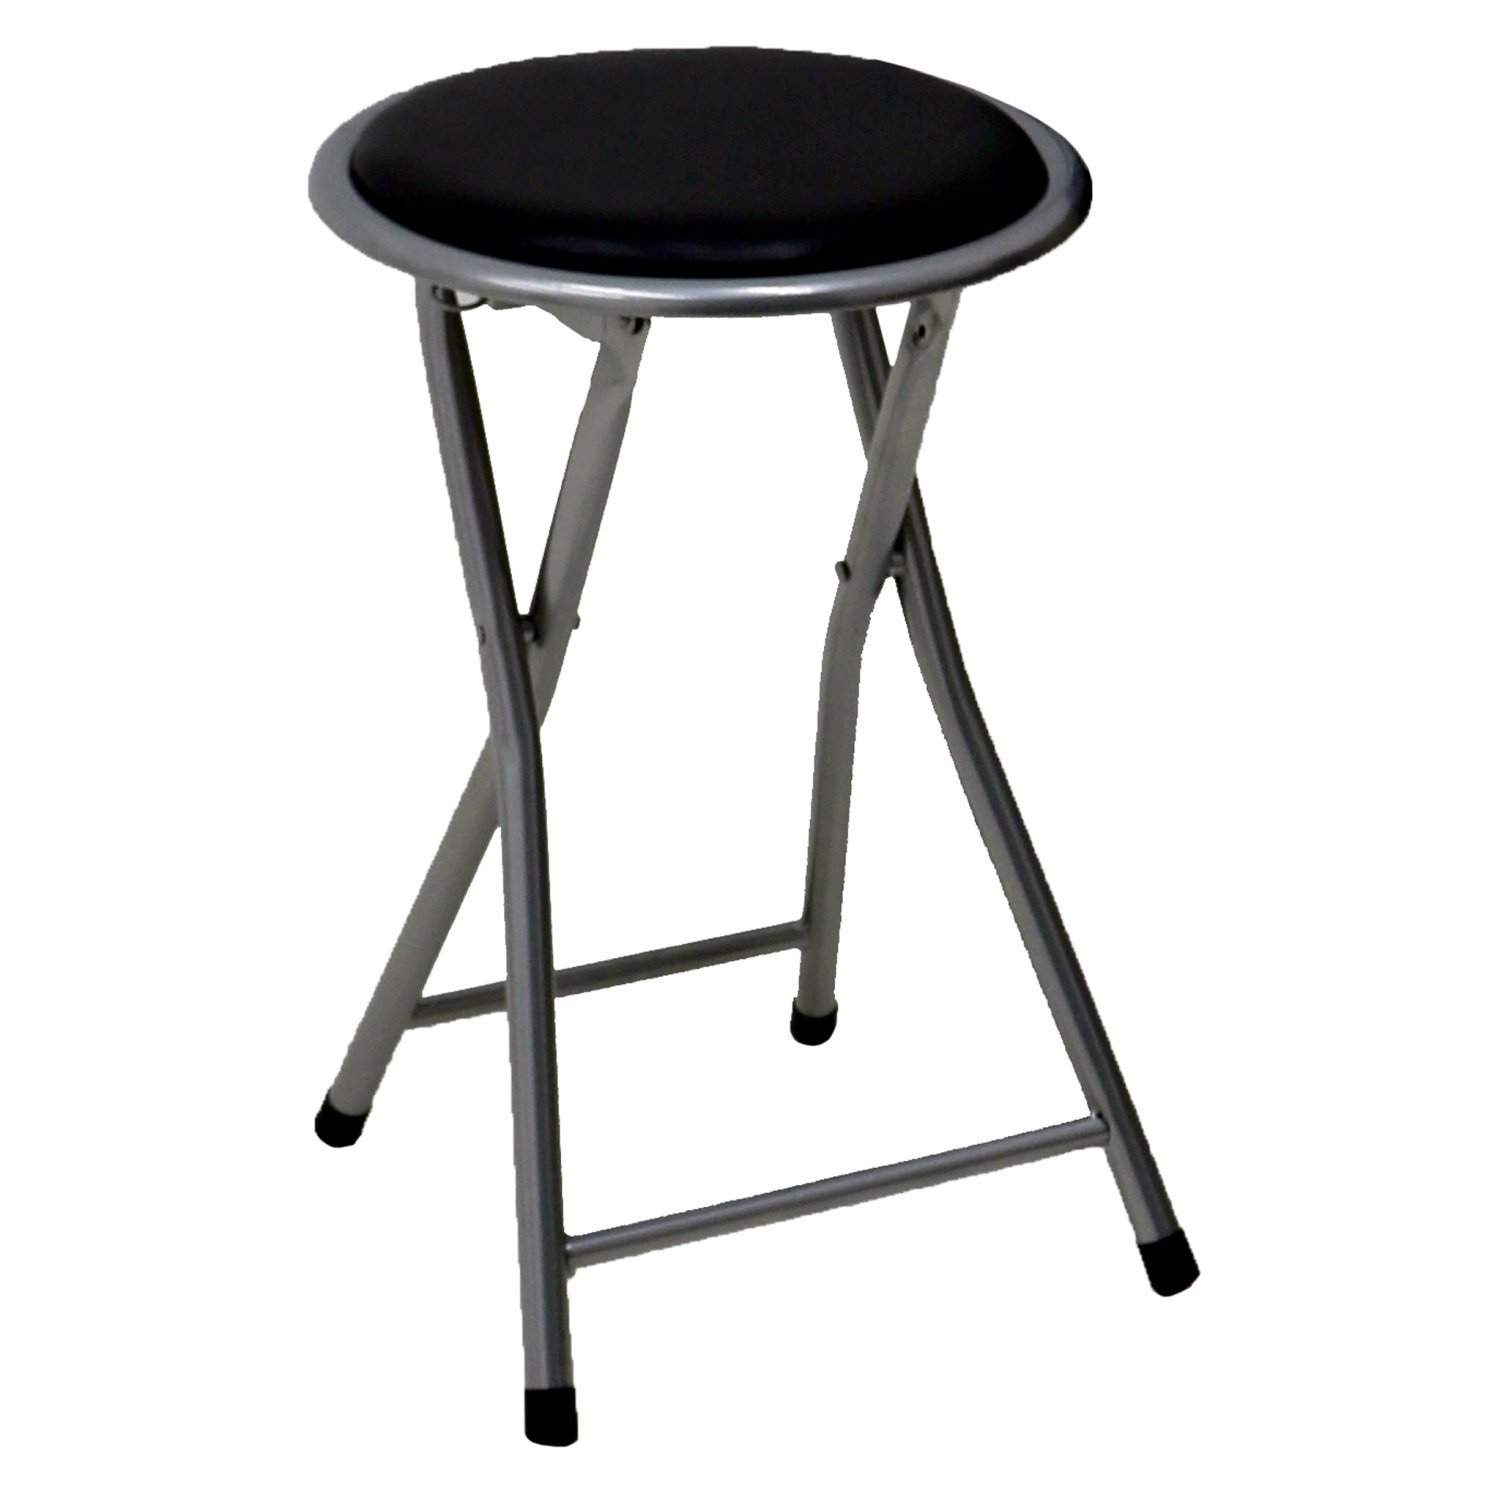 Bar Stools No Assembly Required